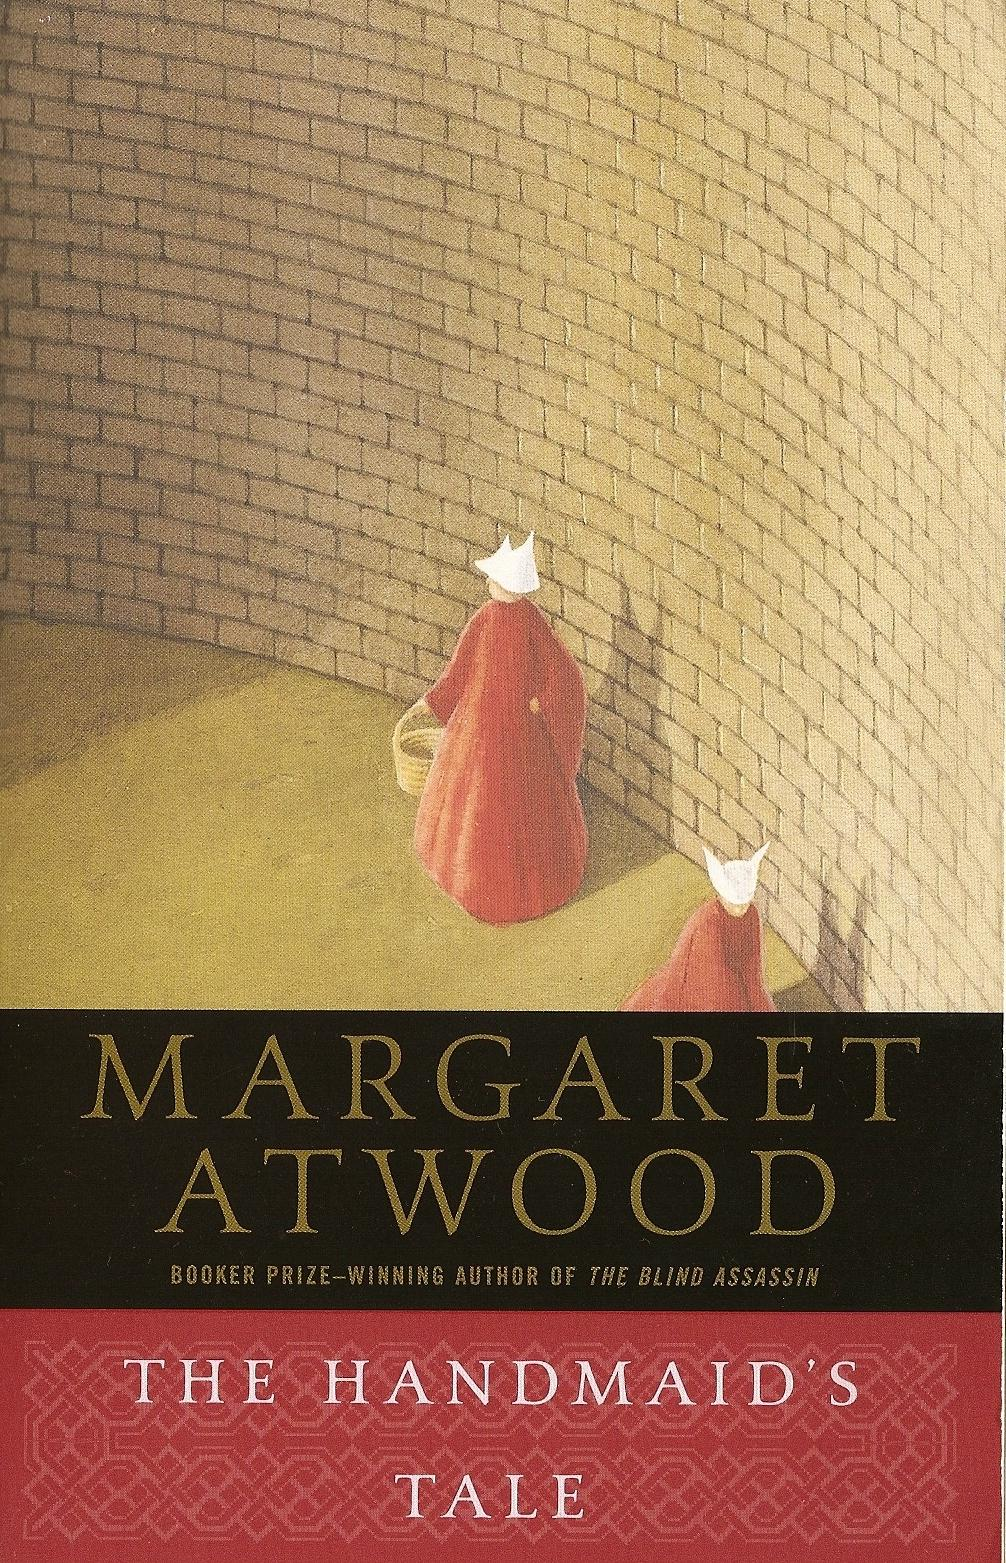 Book cover image of a handmaid.